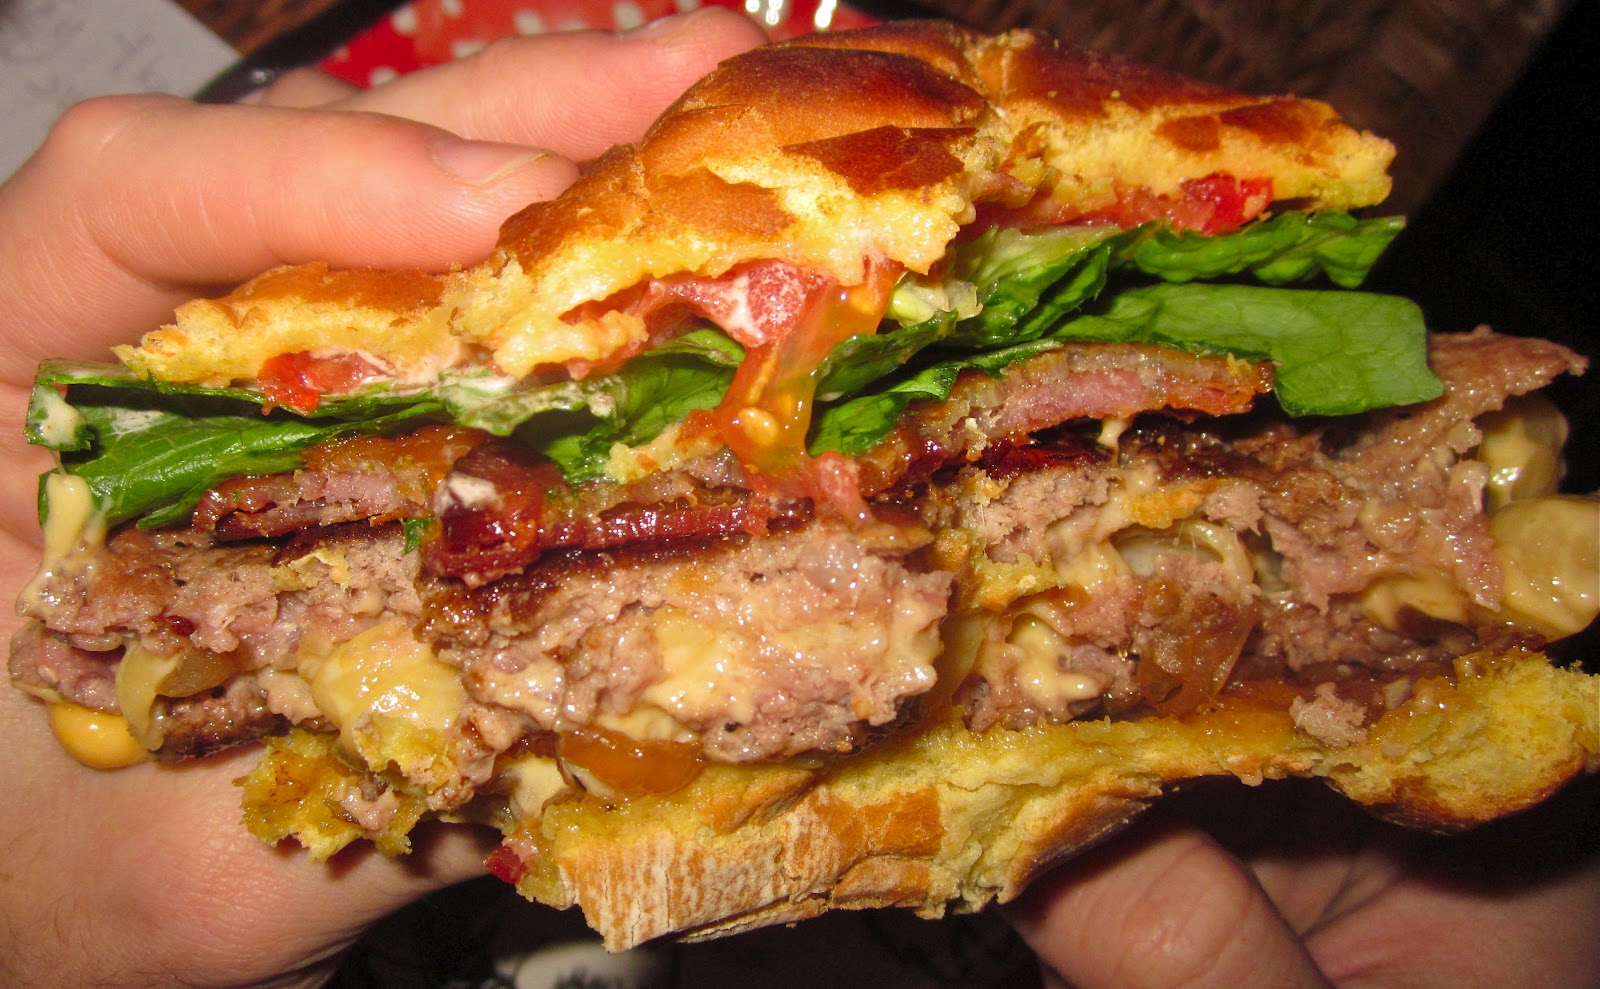 ... Stuffed Burgers with Coca-Cola Caramelized Onions & Weaved Bacon